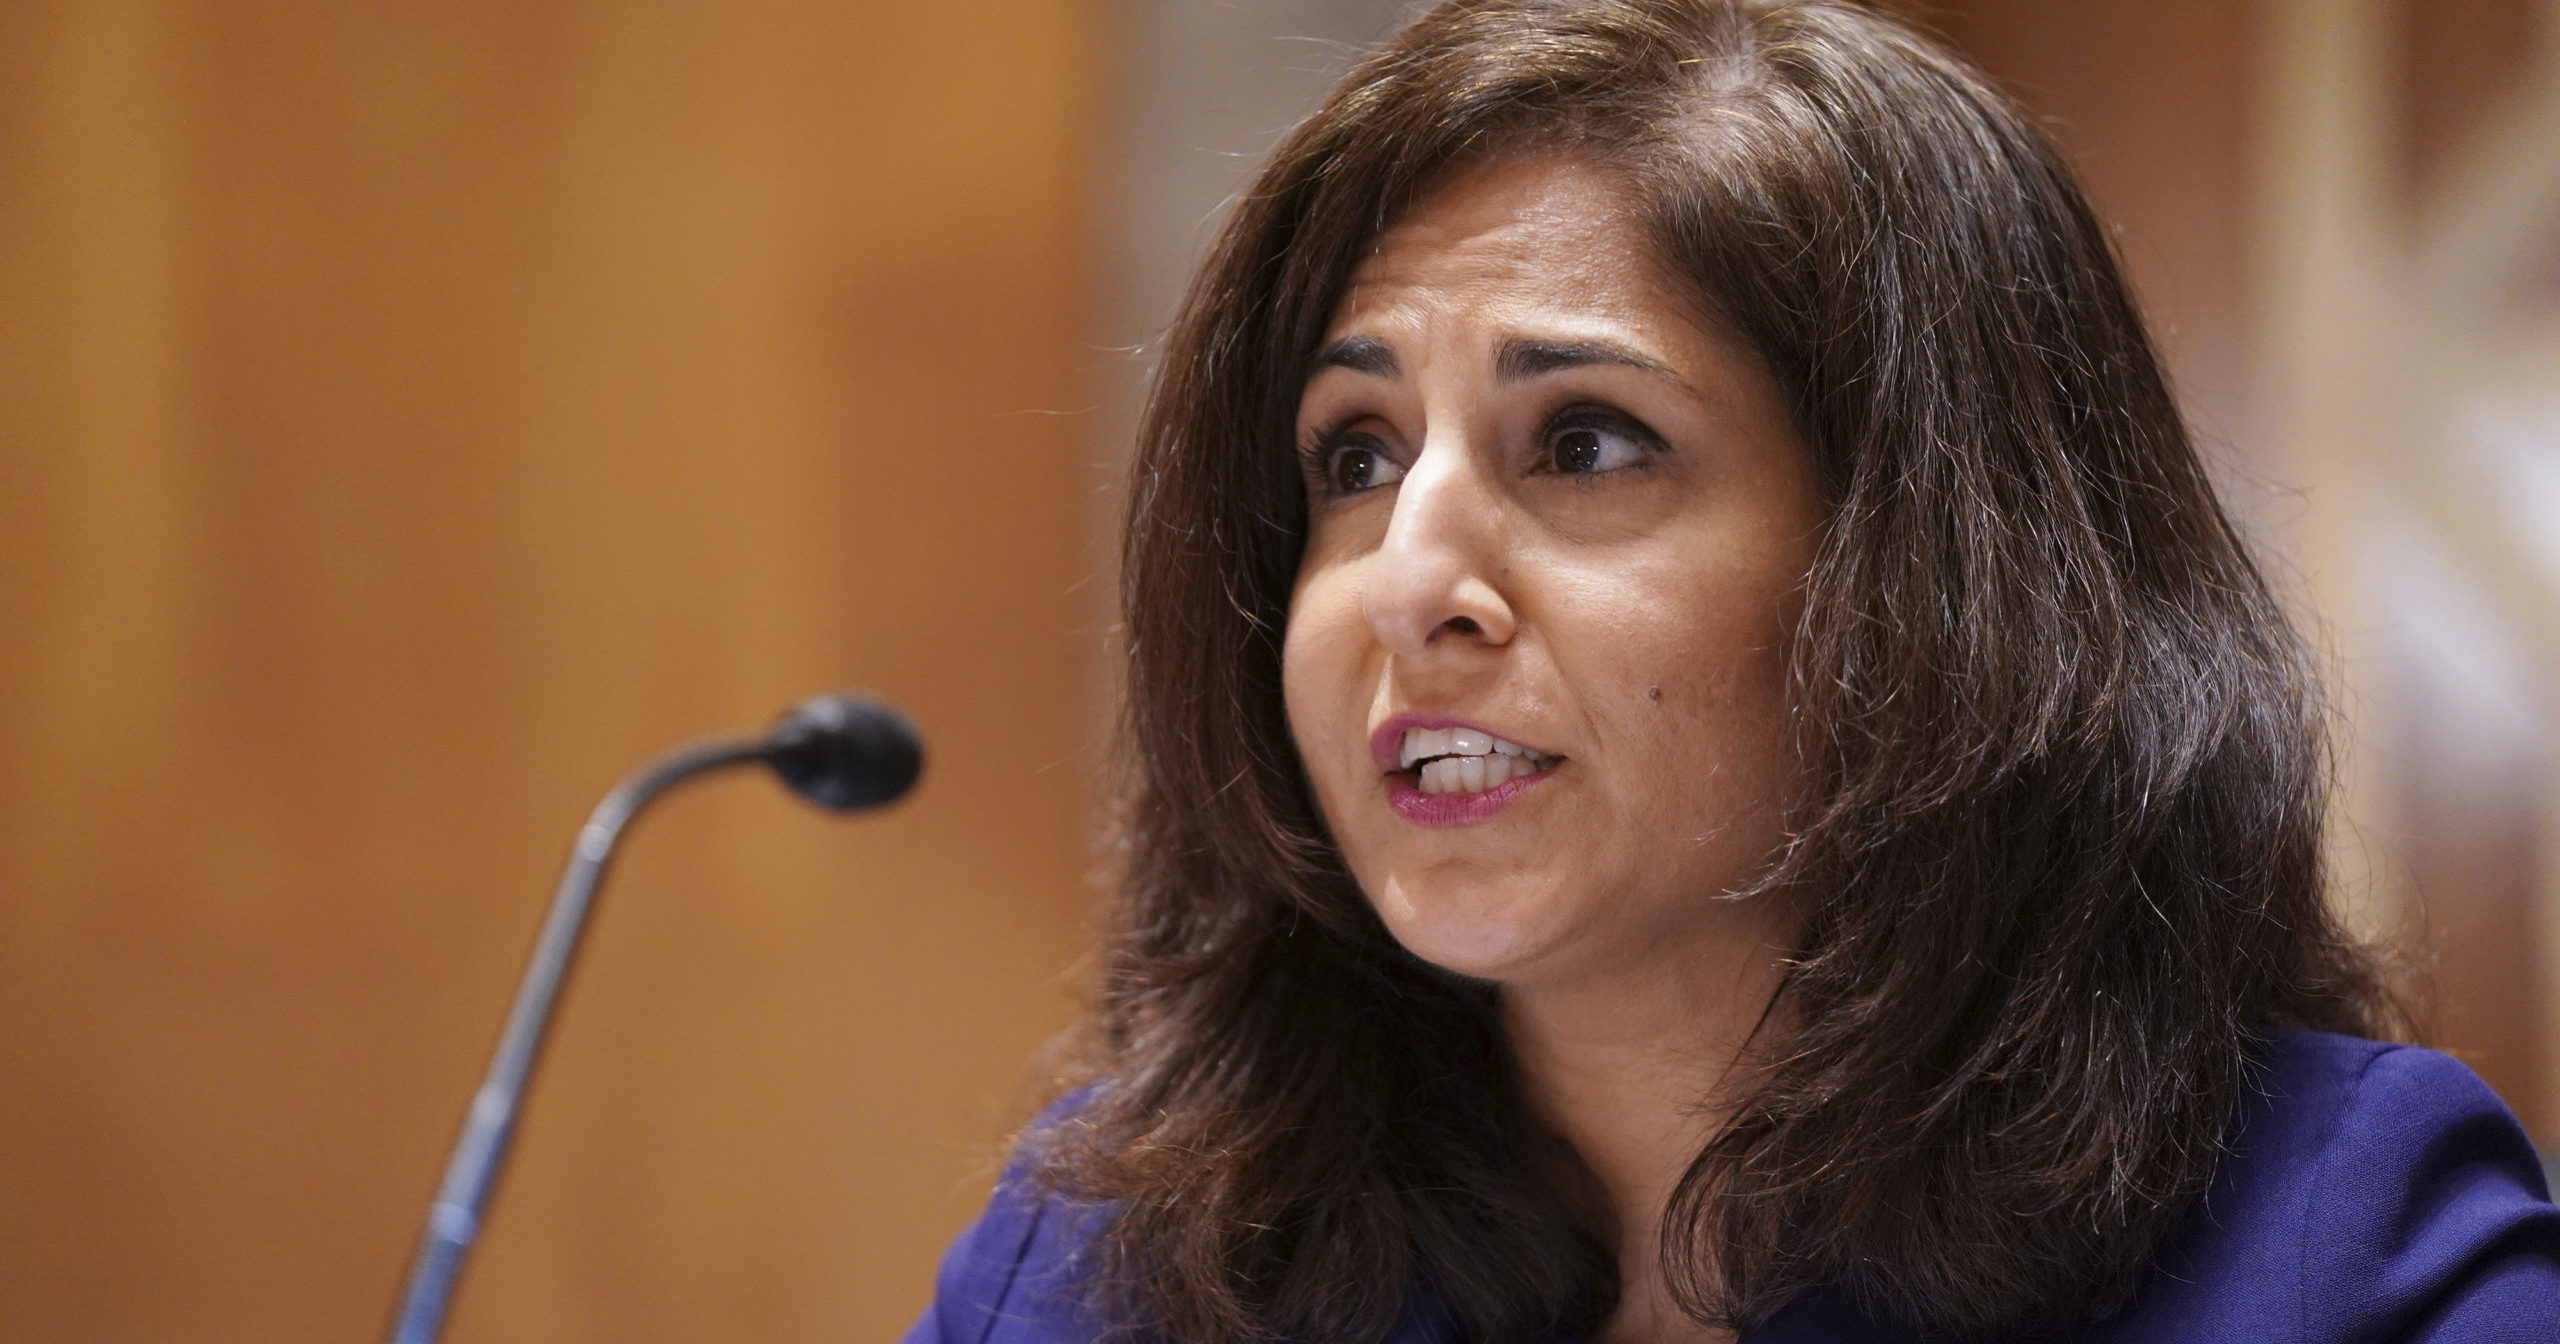 Neera Tanden testifies before the Senate Homeland Security and Government Affairs Committee on her nomination to become the director of the Office of Management and Budget during a hearing on Feb. 9, 2021, on Capitol Hill in Washington, D.C.